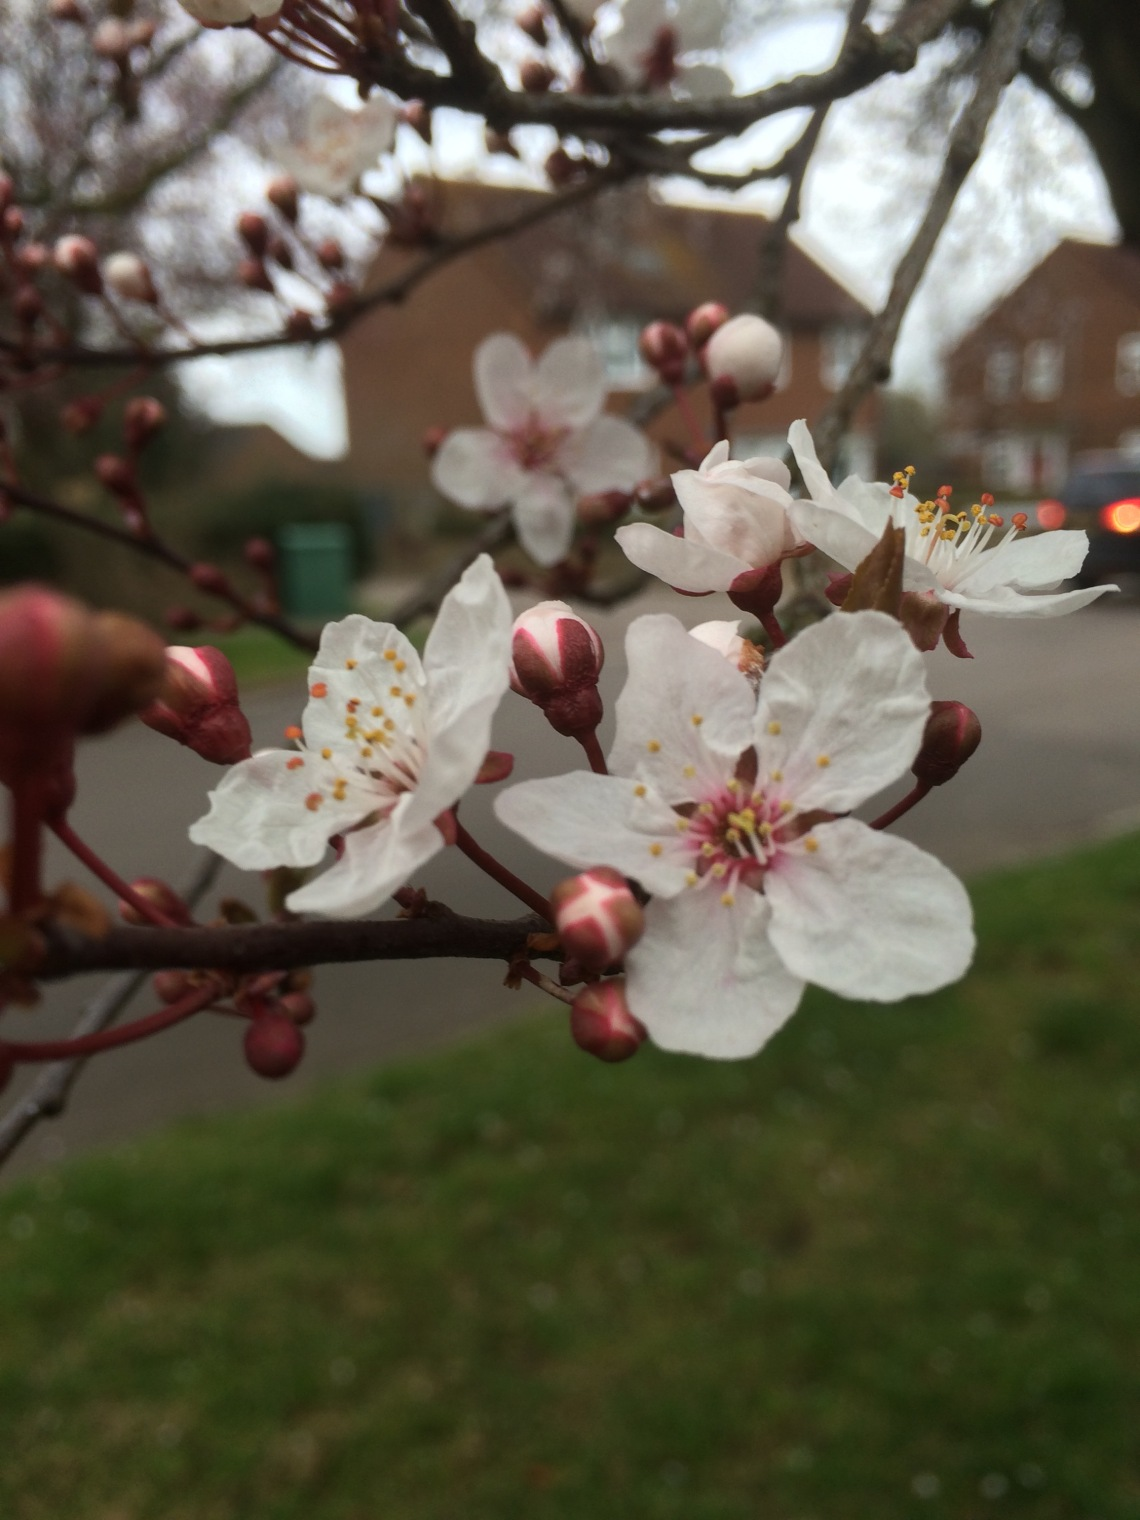 Not my best photo; I only had my iPhone on me but I needed to take a shot of my first blossom of the year!